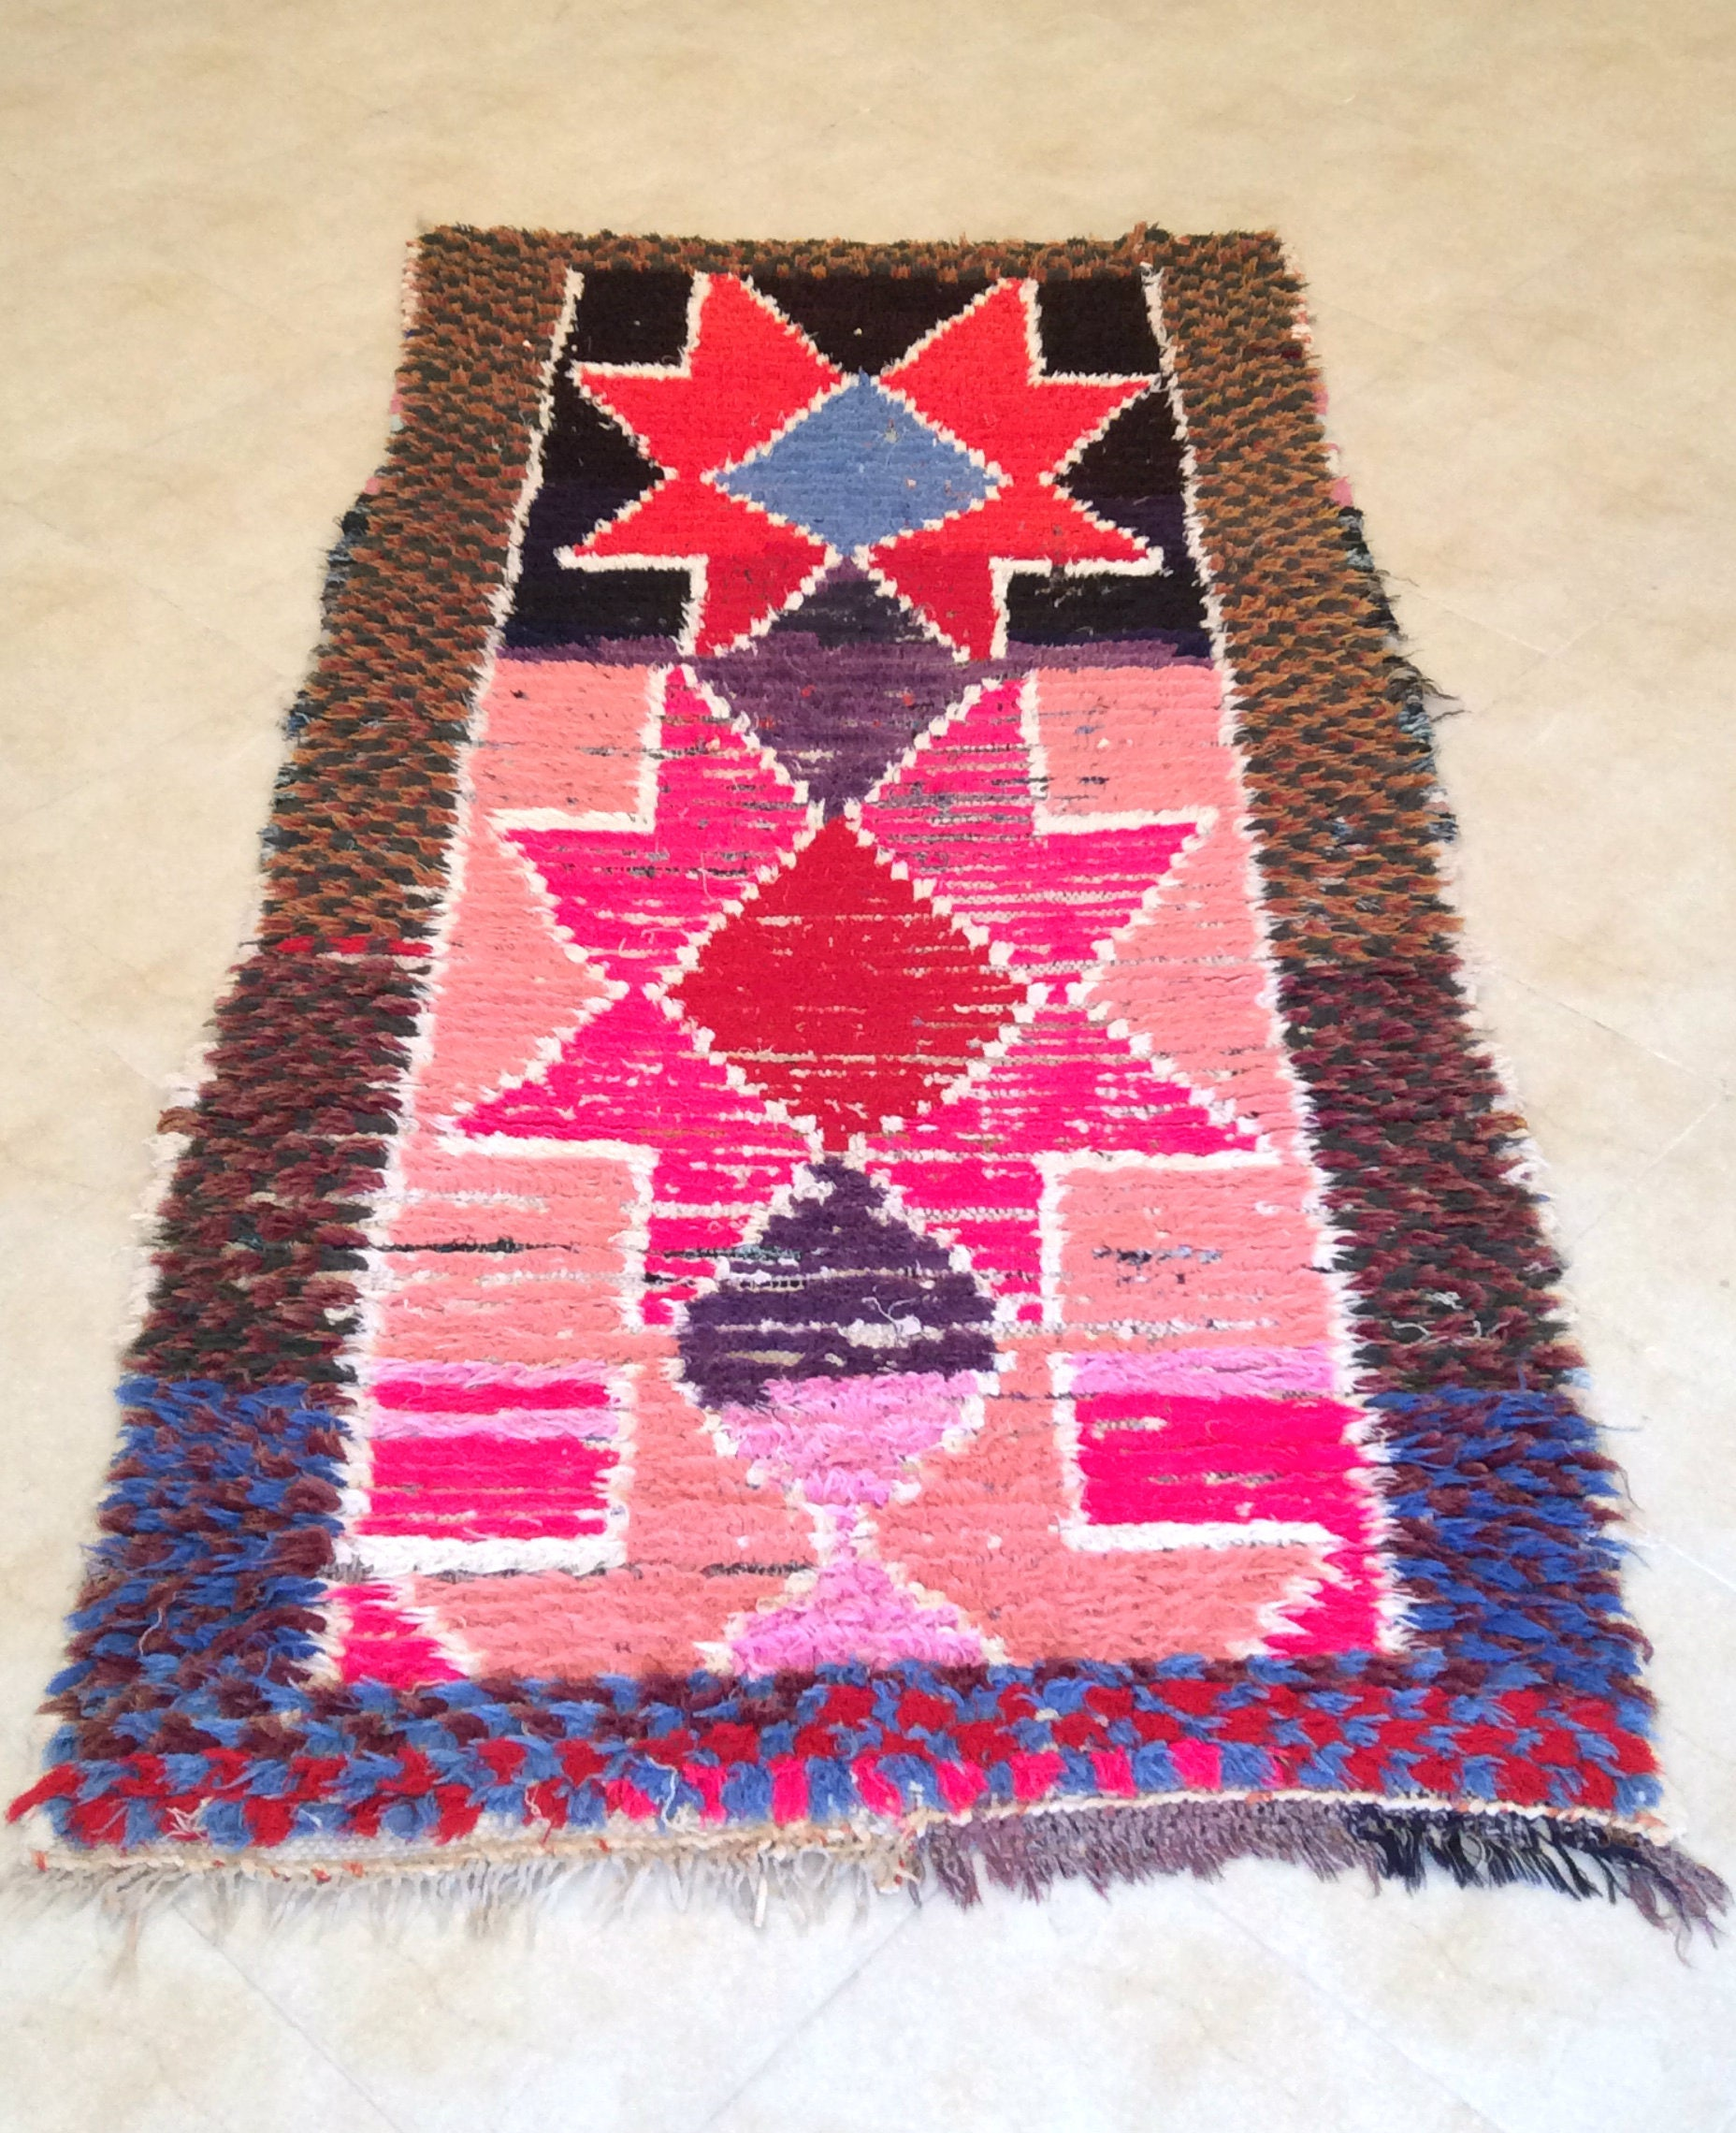 Berber Boucherouite Rug From The Moroccan Atlas Mountains